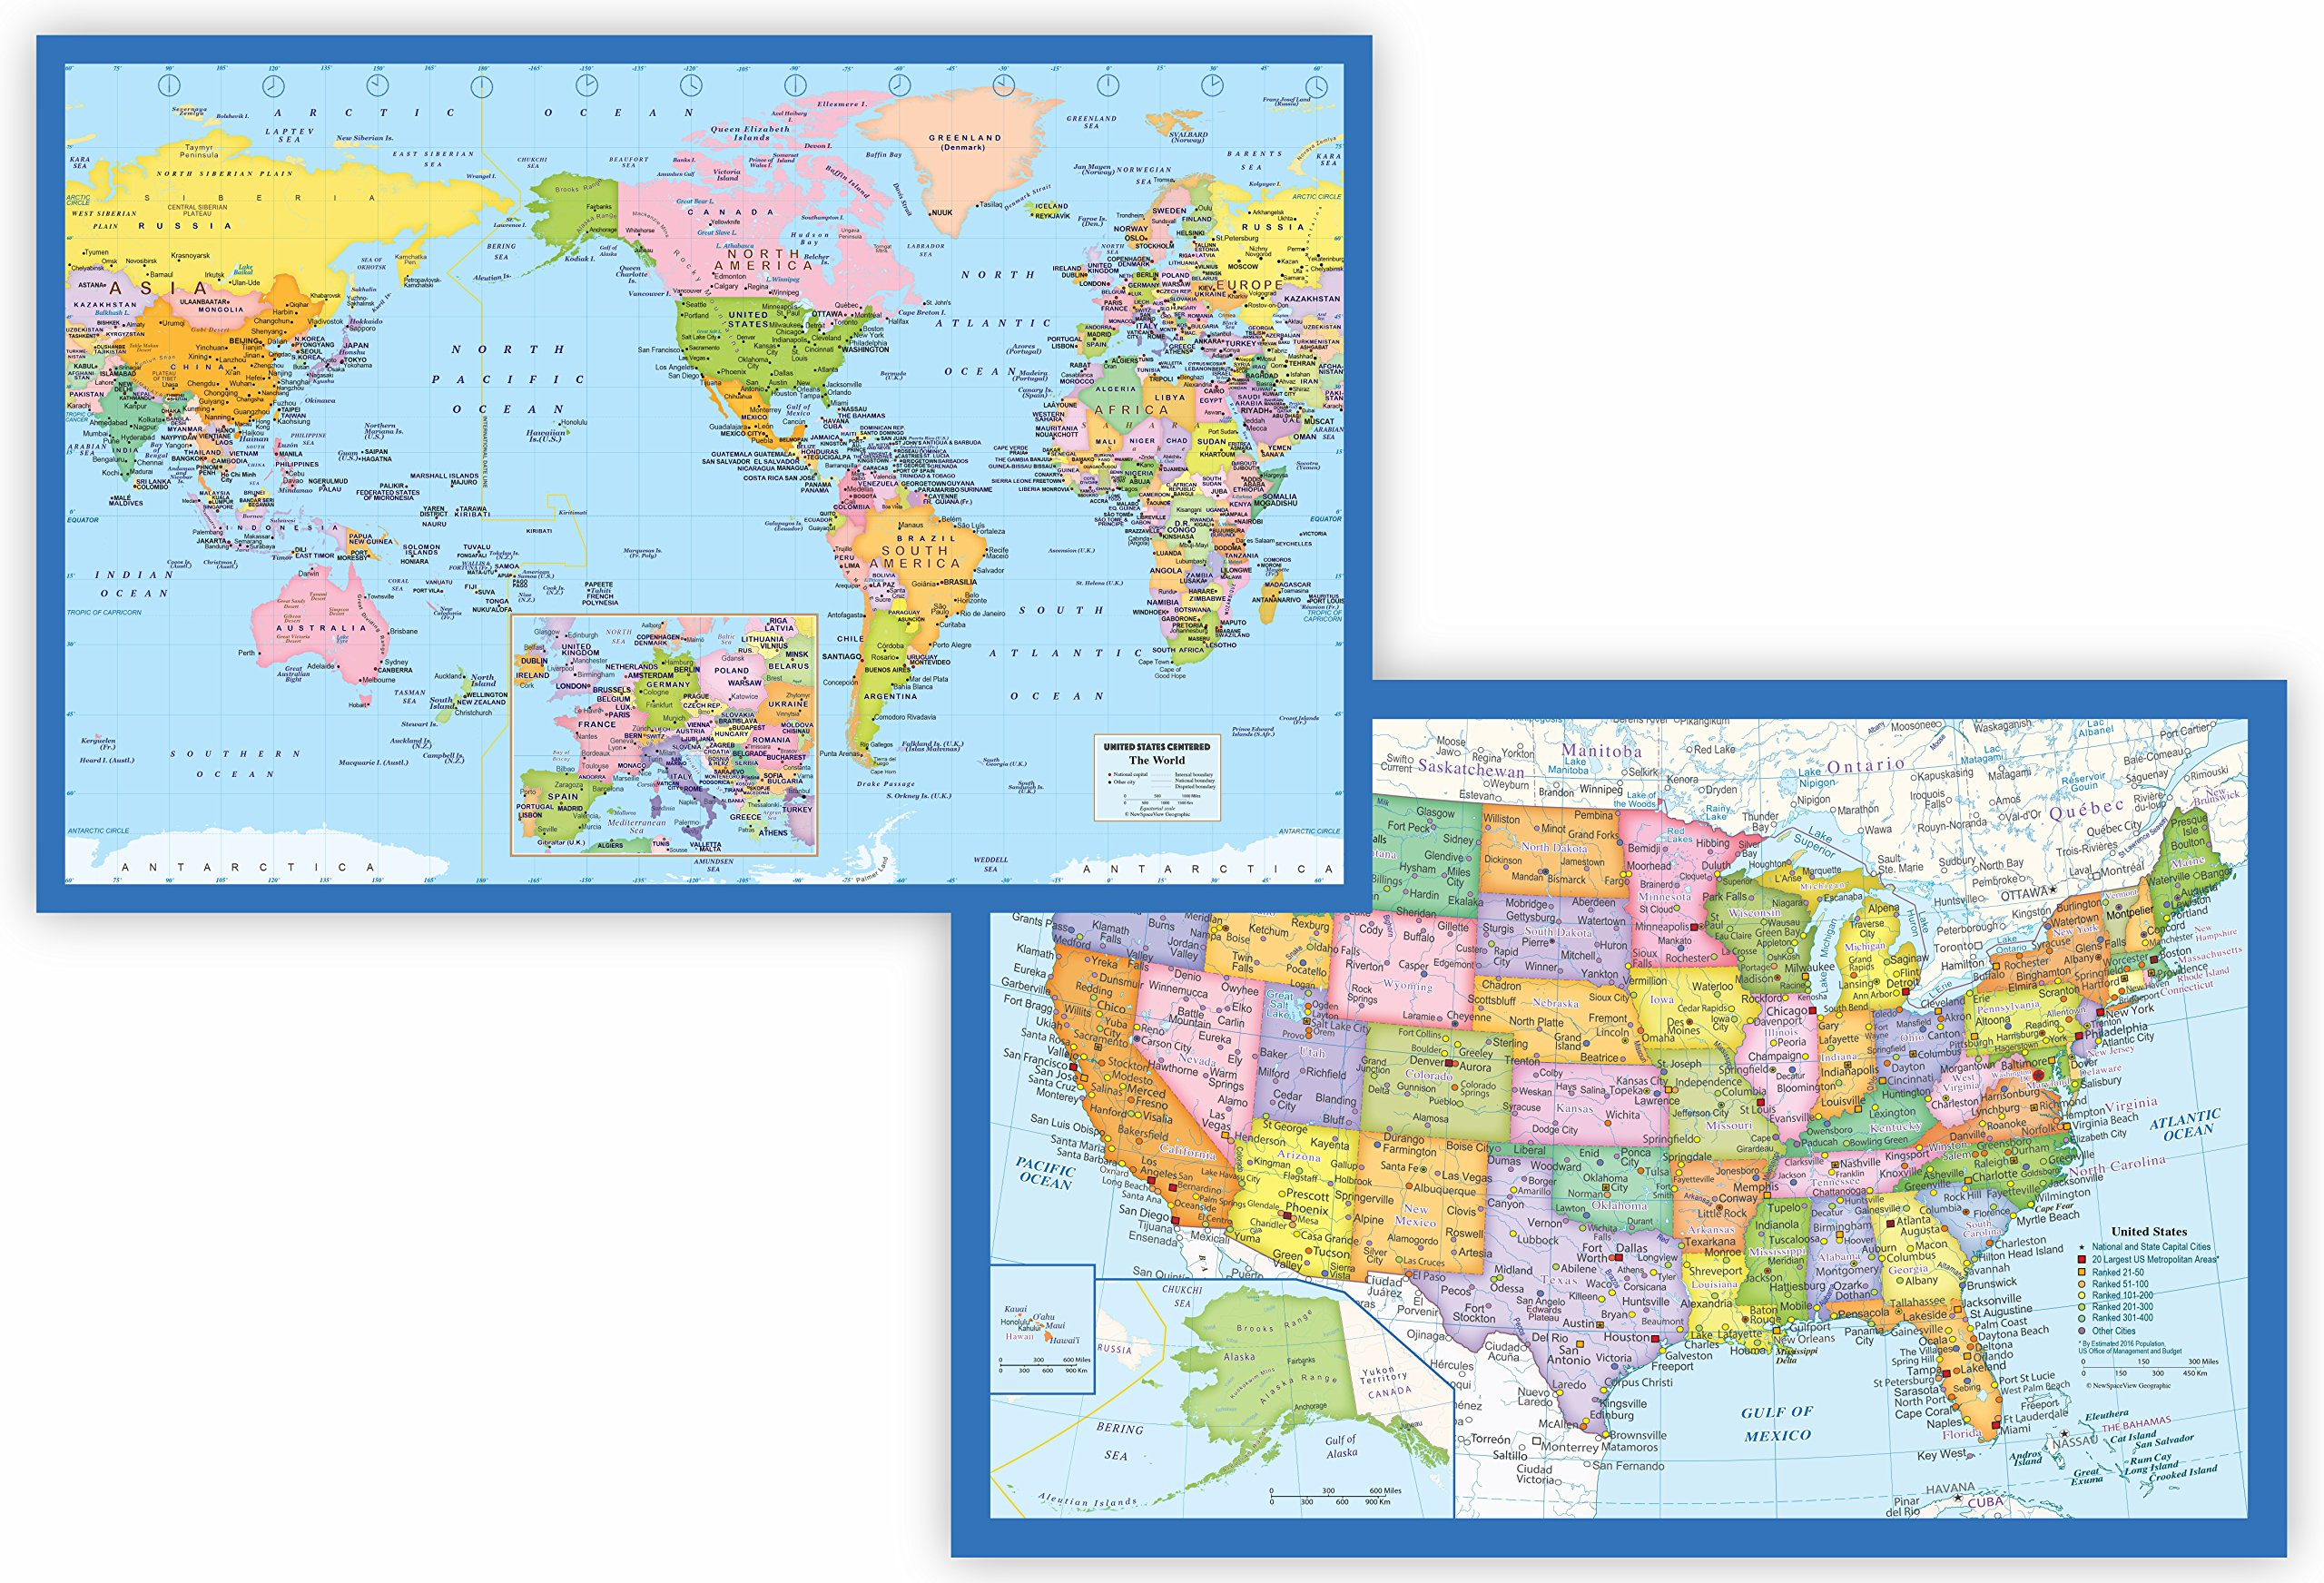 Cheap World Map With United States, find World Map With United ... on print usa map, framed usa map, colored usa map, digital usa map, decorative usa map, foam usa map, standard usa map, black usa map, textured usa map, numbered usa map, usa geography map, cork usa map, curved usa map, complete usa map, wooden usa map, usa accent map, plain usa map, quartz usa map, clear usa map, white usa map,